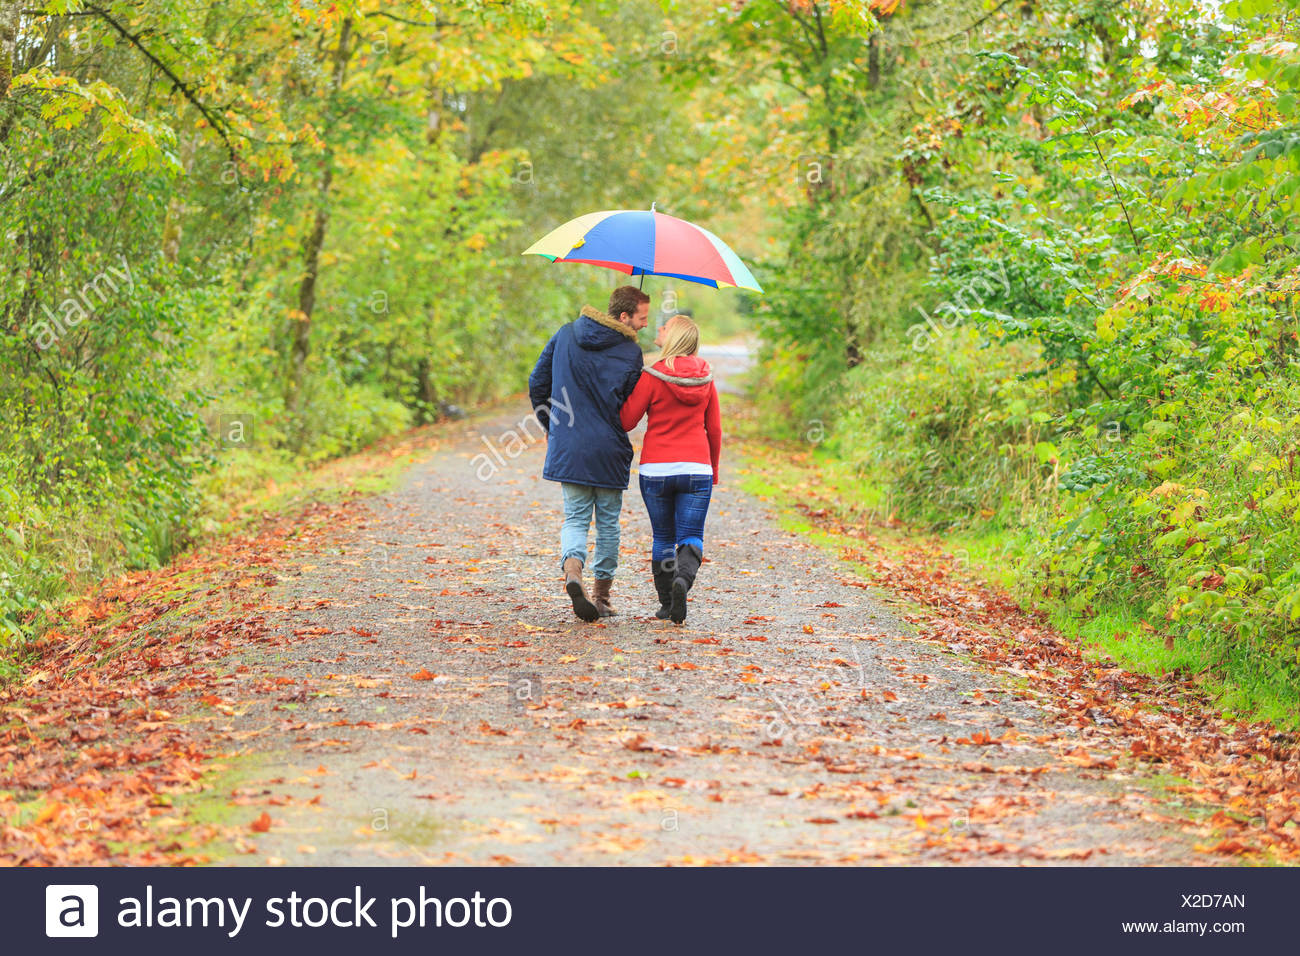 Young couple strolling along country lane with colorful umbrella - Stock Image